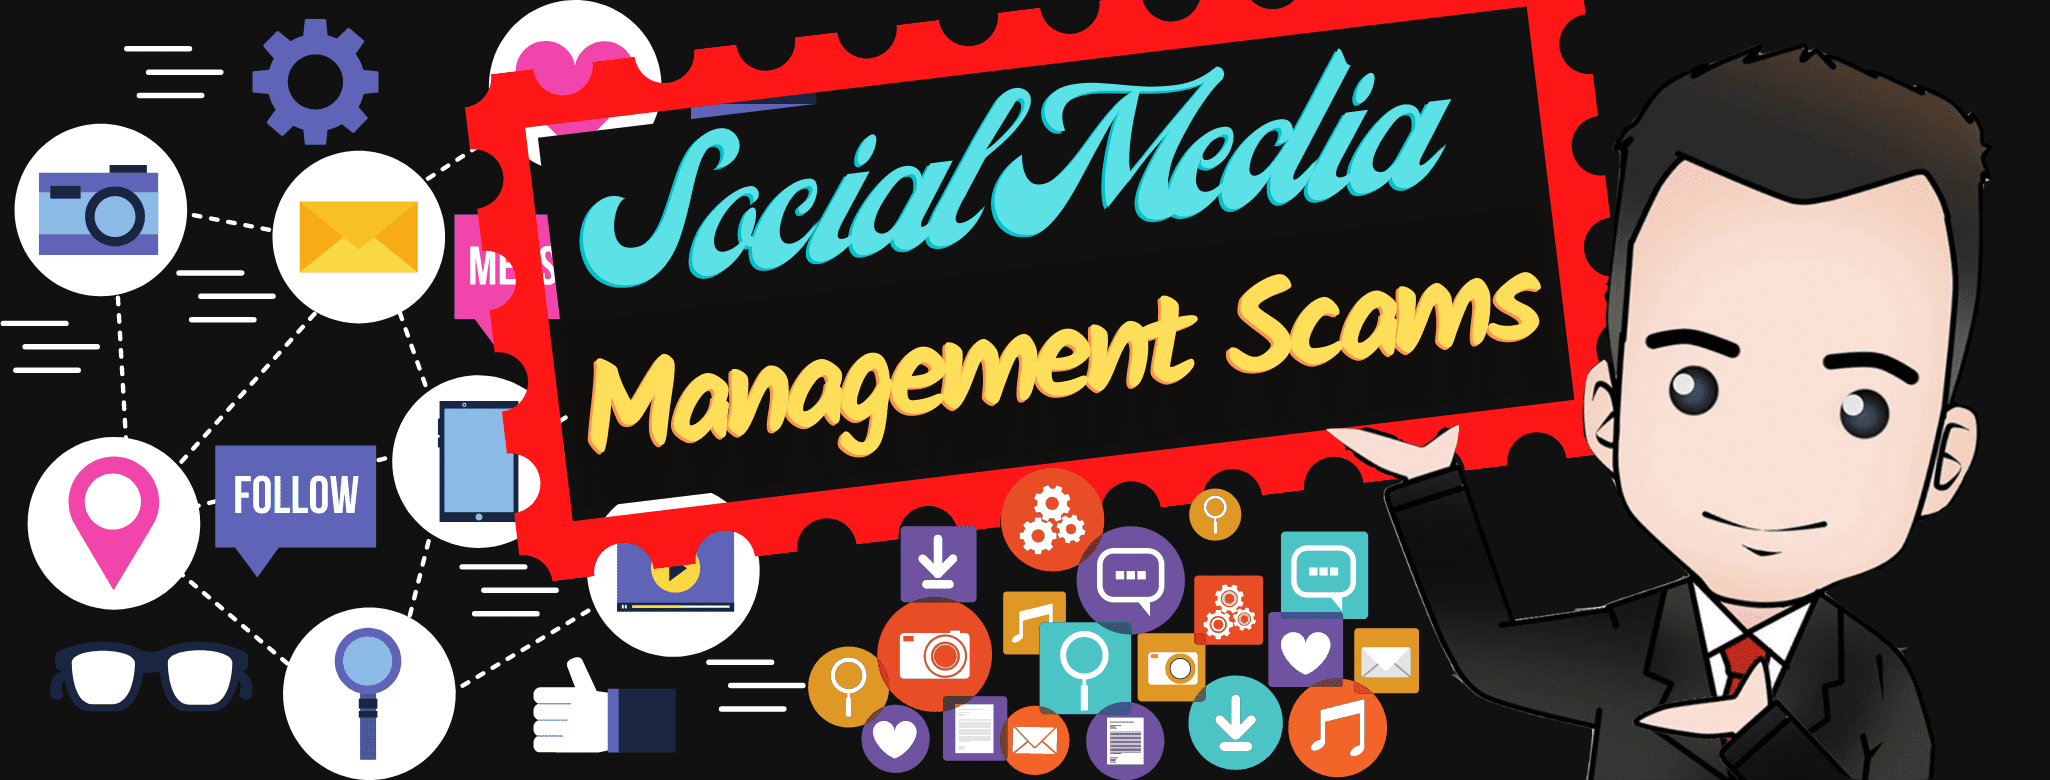 picture of Social Media Management Scams banner